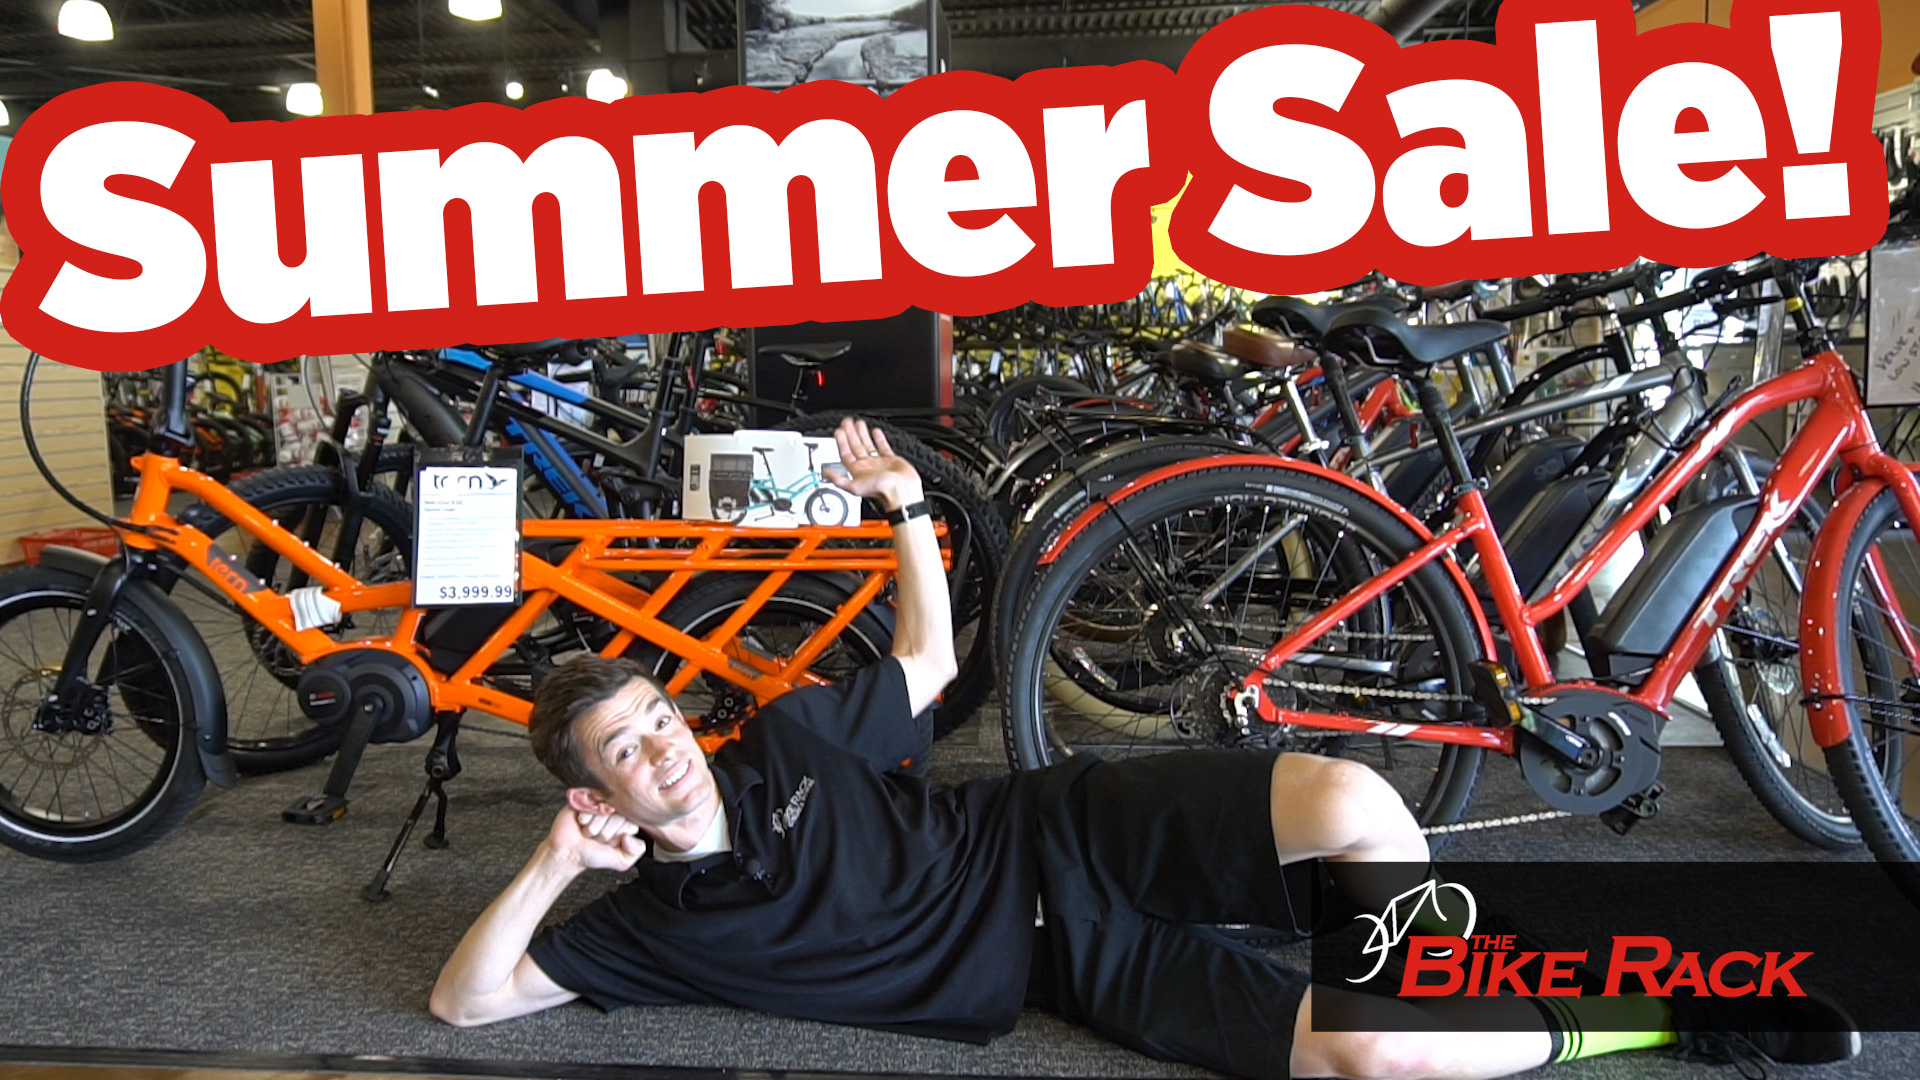 COMMERCIAL: The Bike Rack's 2019 Summer Sale